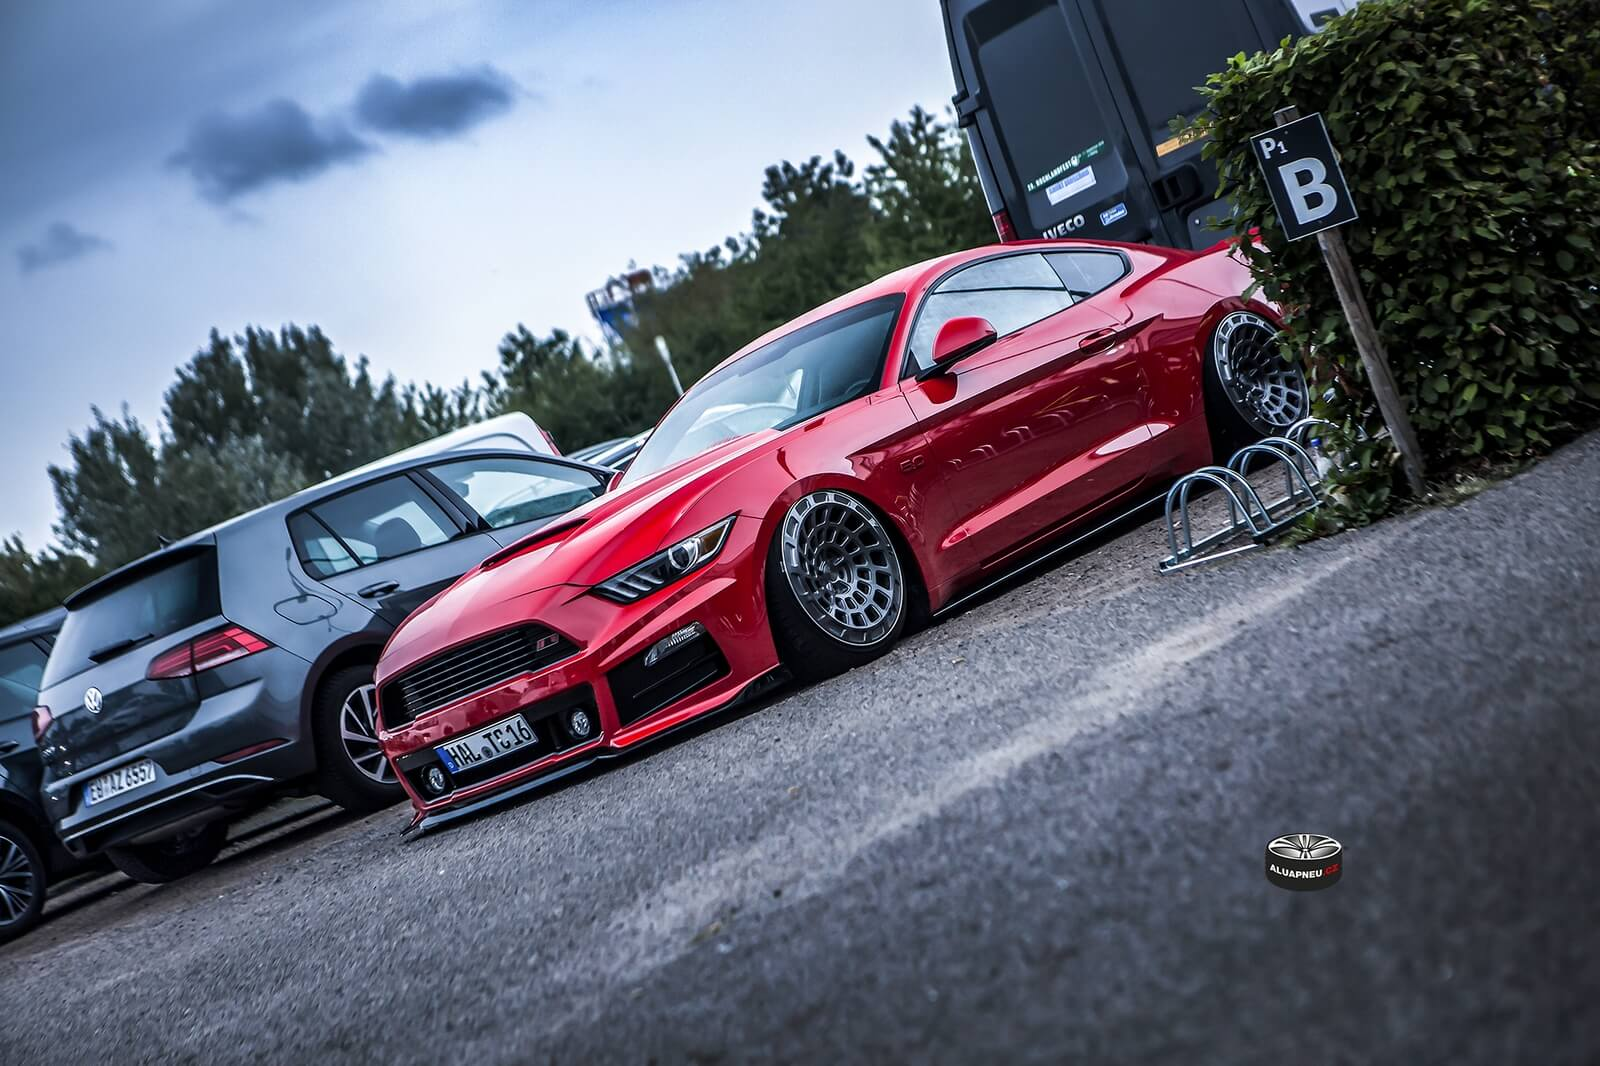 Alu disky Ford Mustang stanced - tuning Xs CarNight parking Dresden